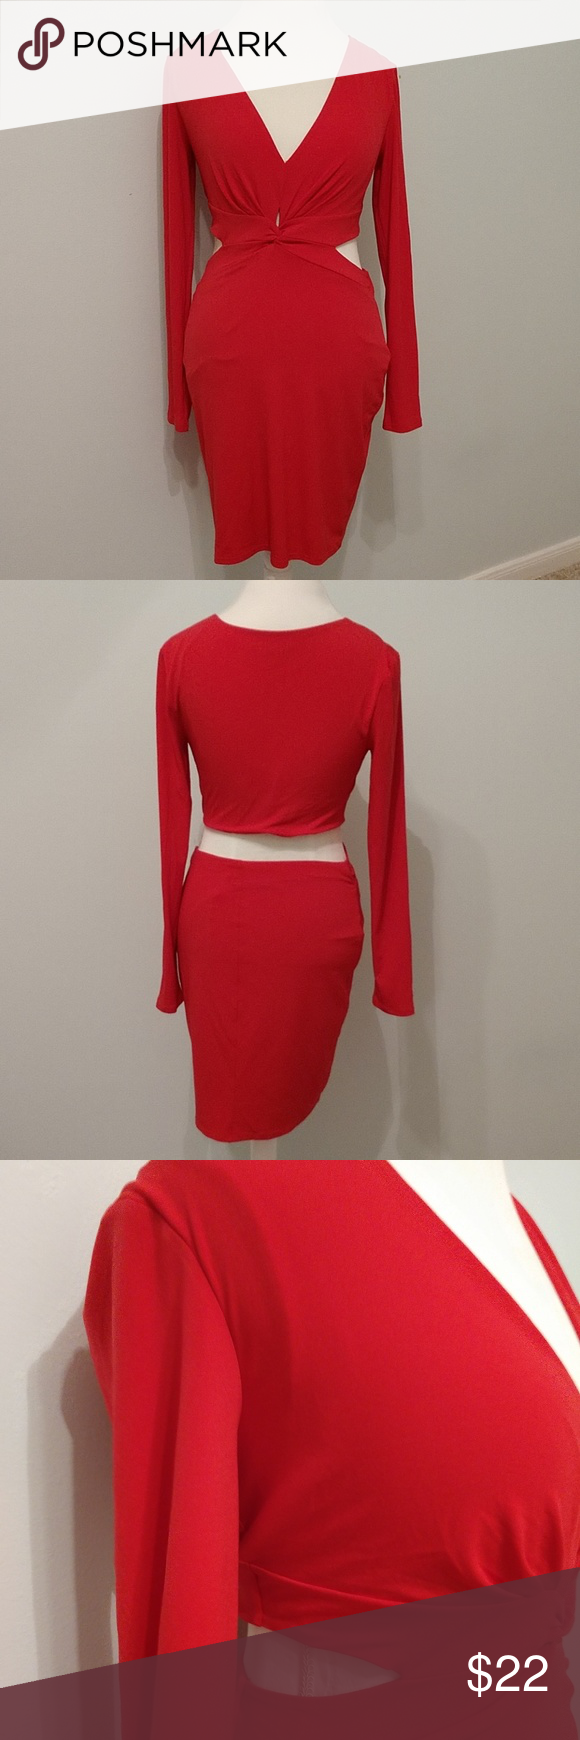 Express cocktail cutout dress spandex material fiery red and red